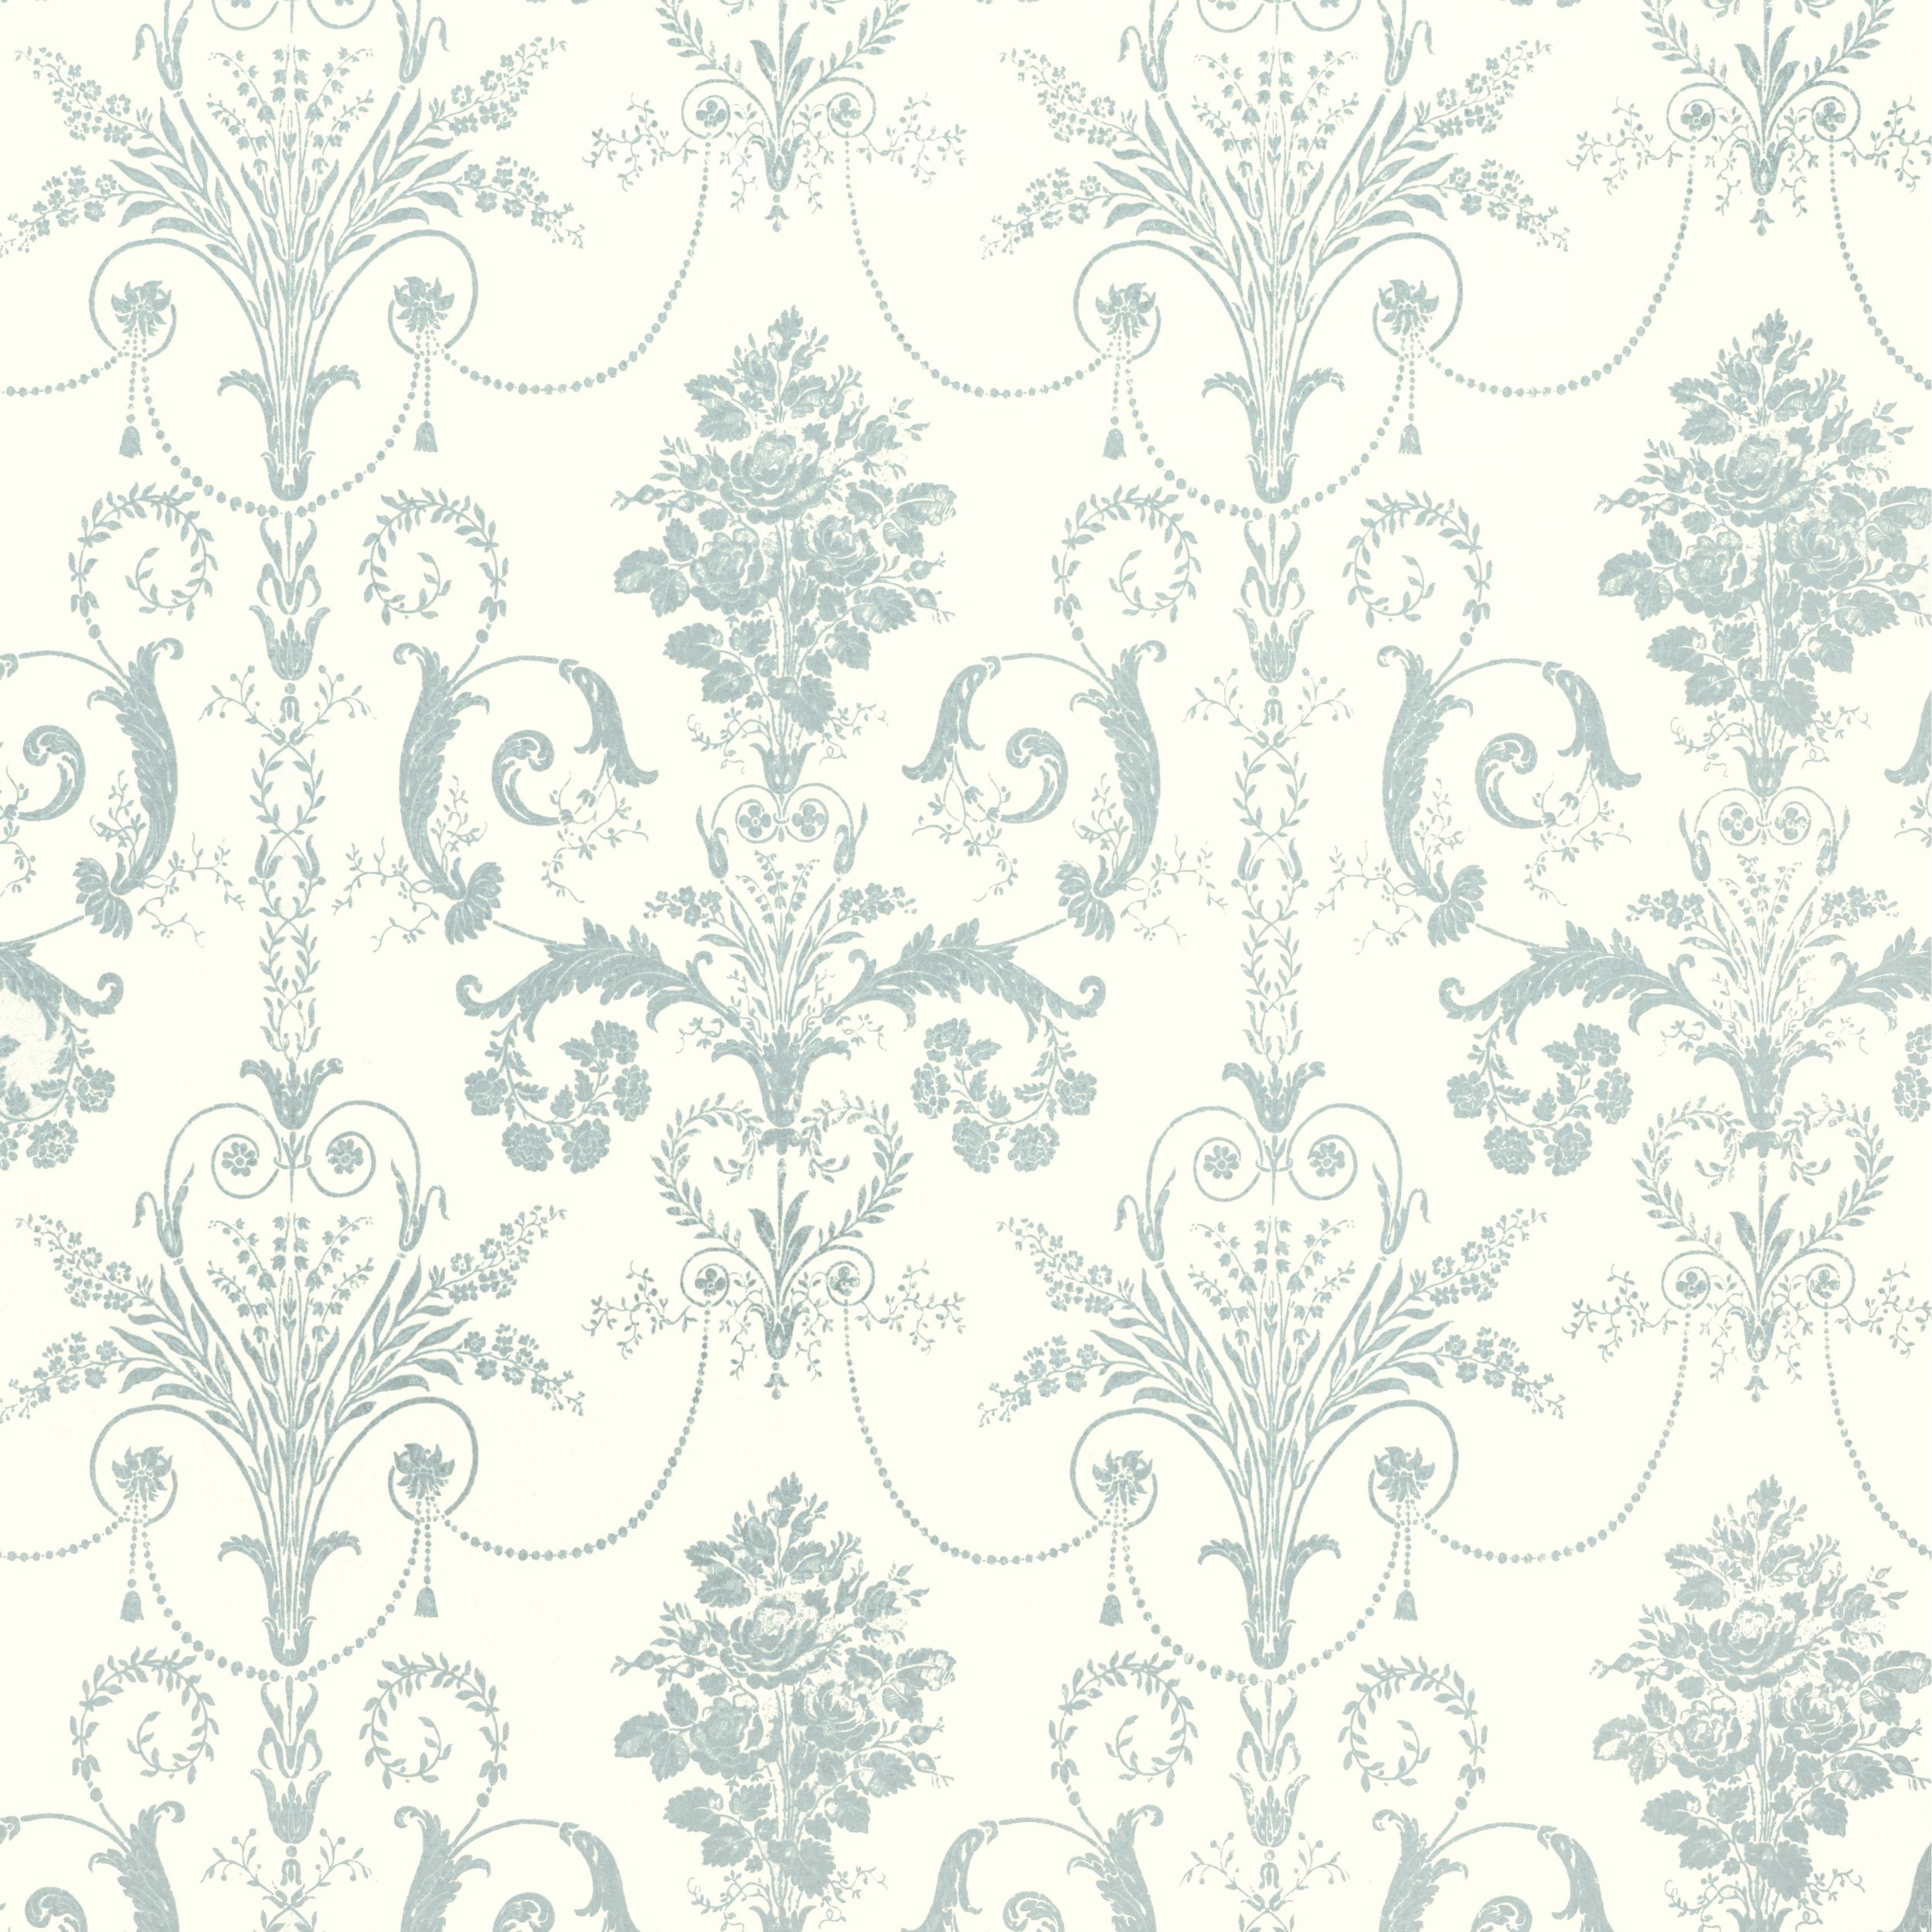 josette duck egg white wallpaper at laura ashley beautiful backgrounds pinterest. Black Bedroom Furniture Sets. Home Design Ideas